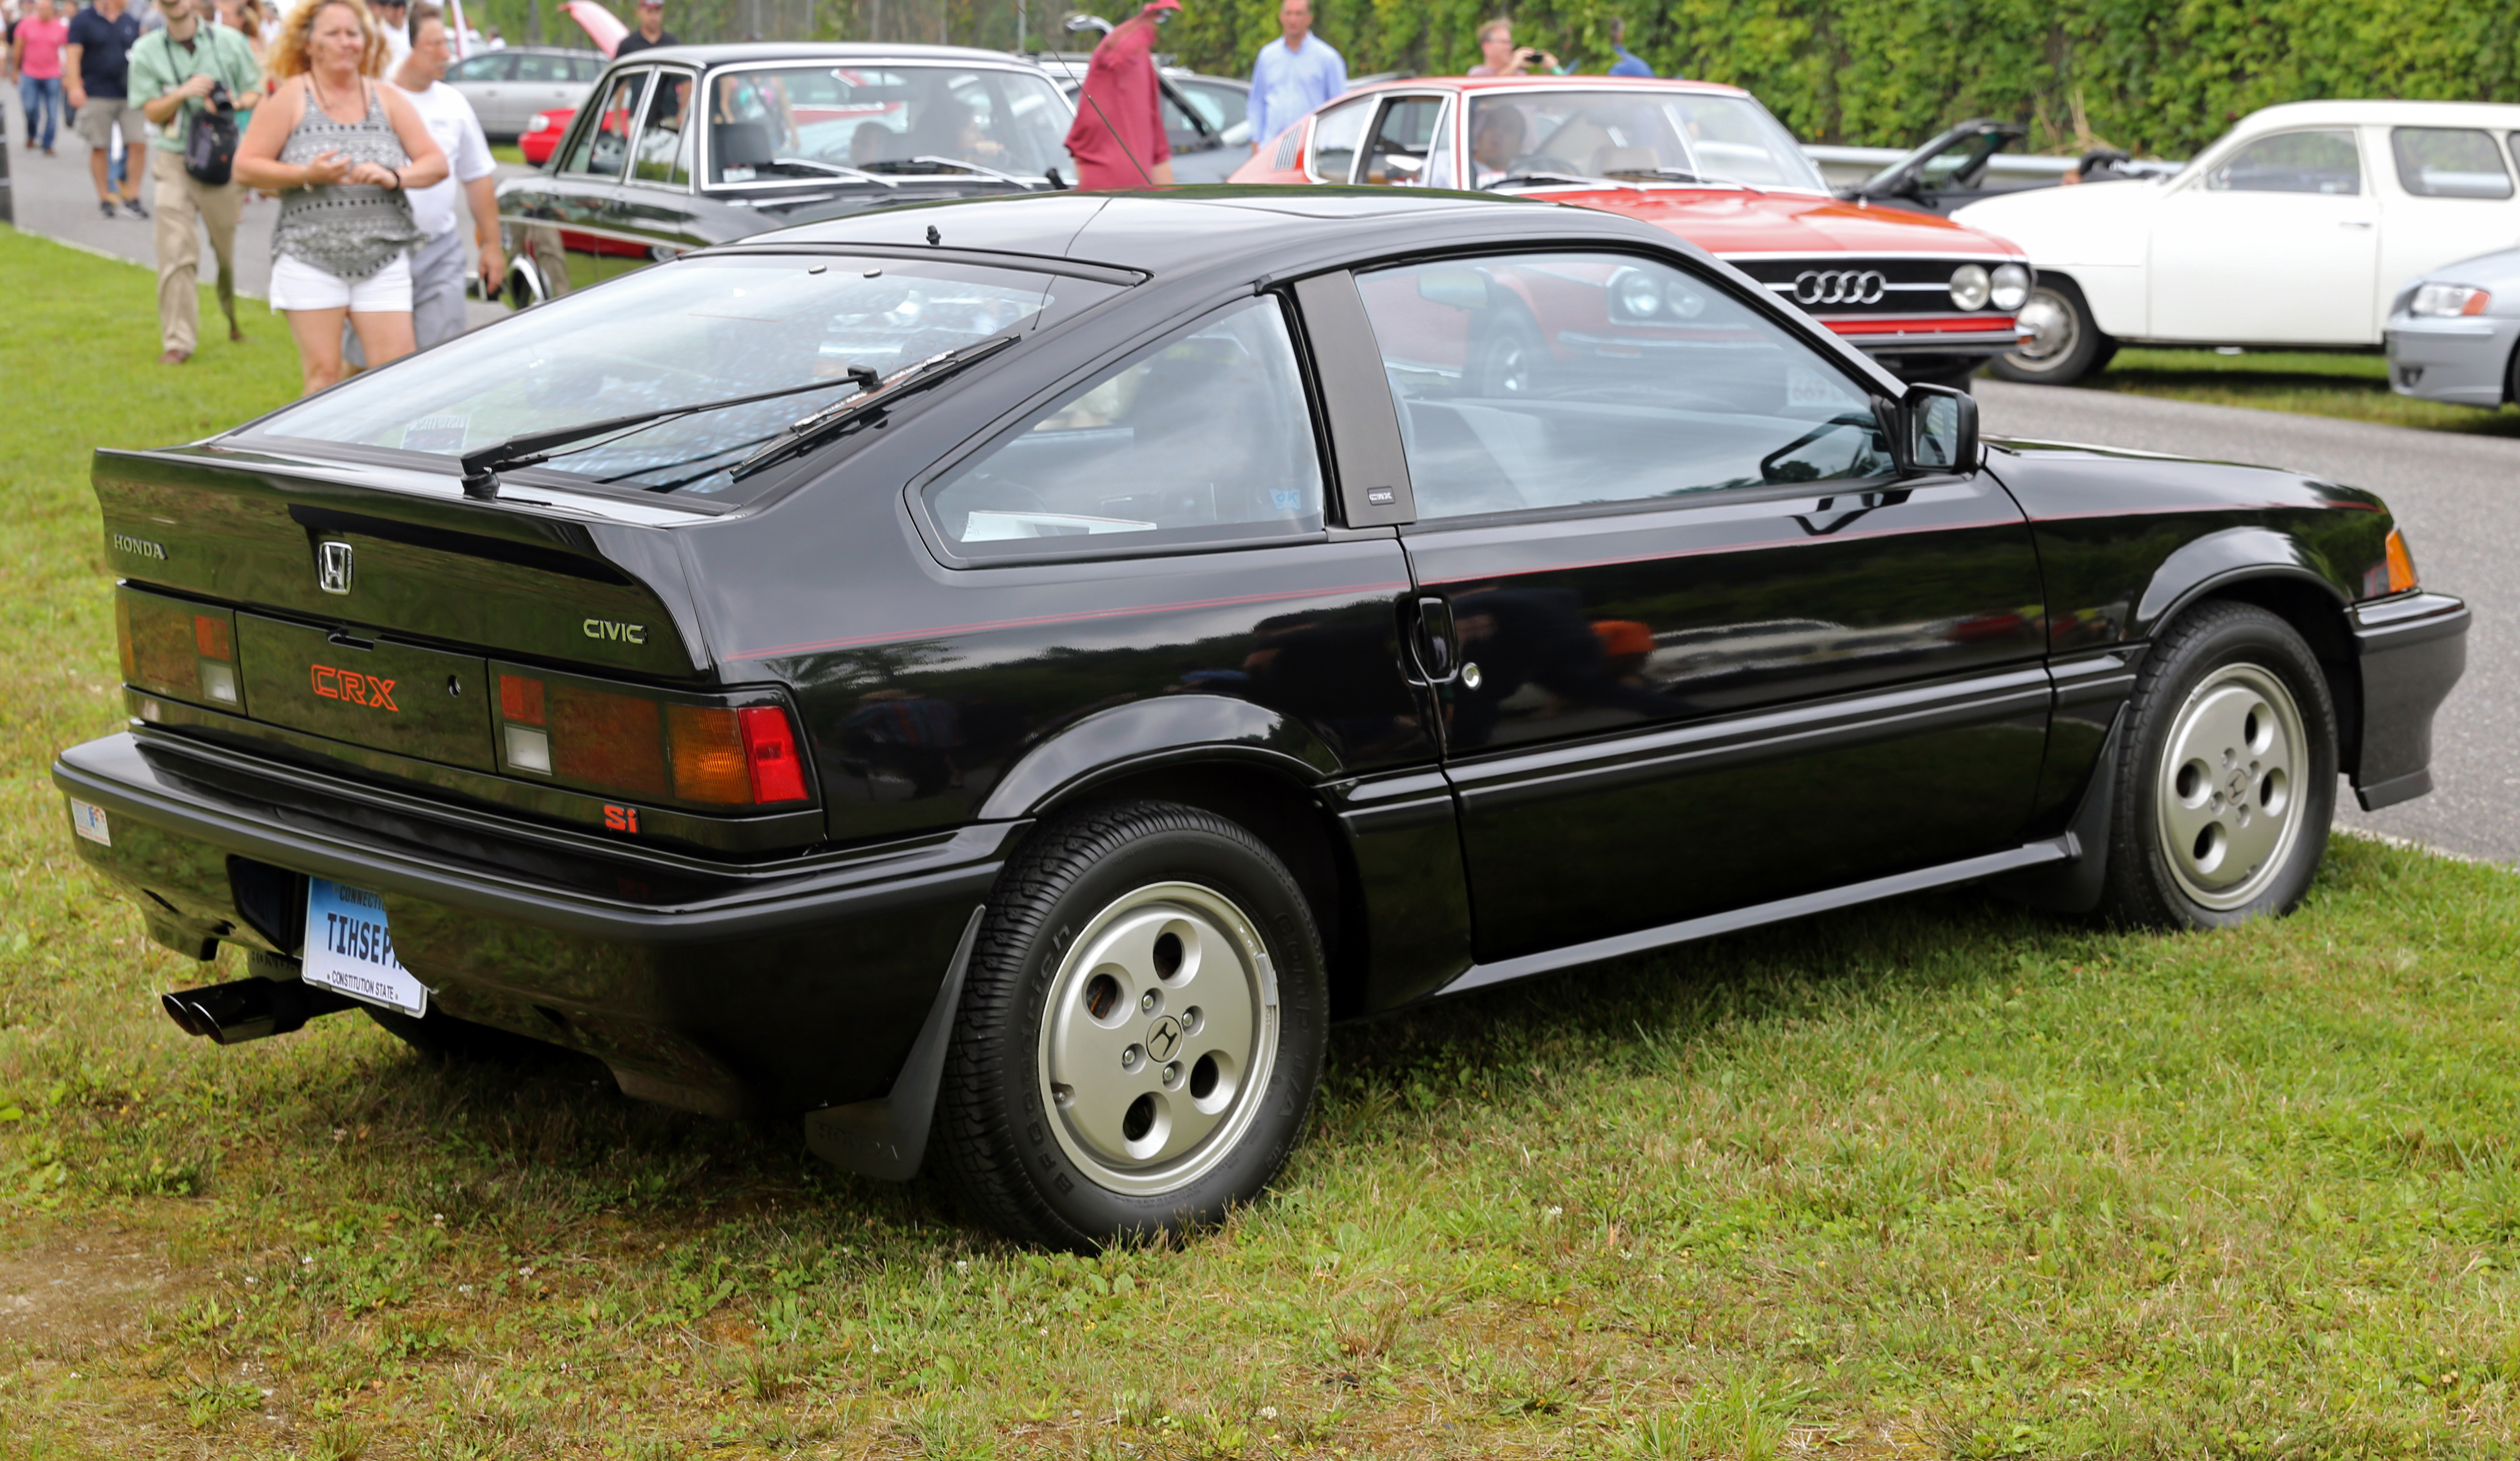 file 1987 honda crx si rear right lime rock jpg wikipedia. Black Bedroom Furniture Sets. Home Design Ideas